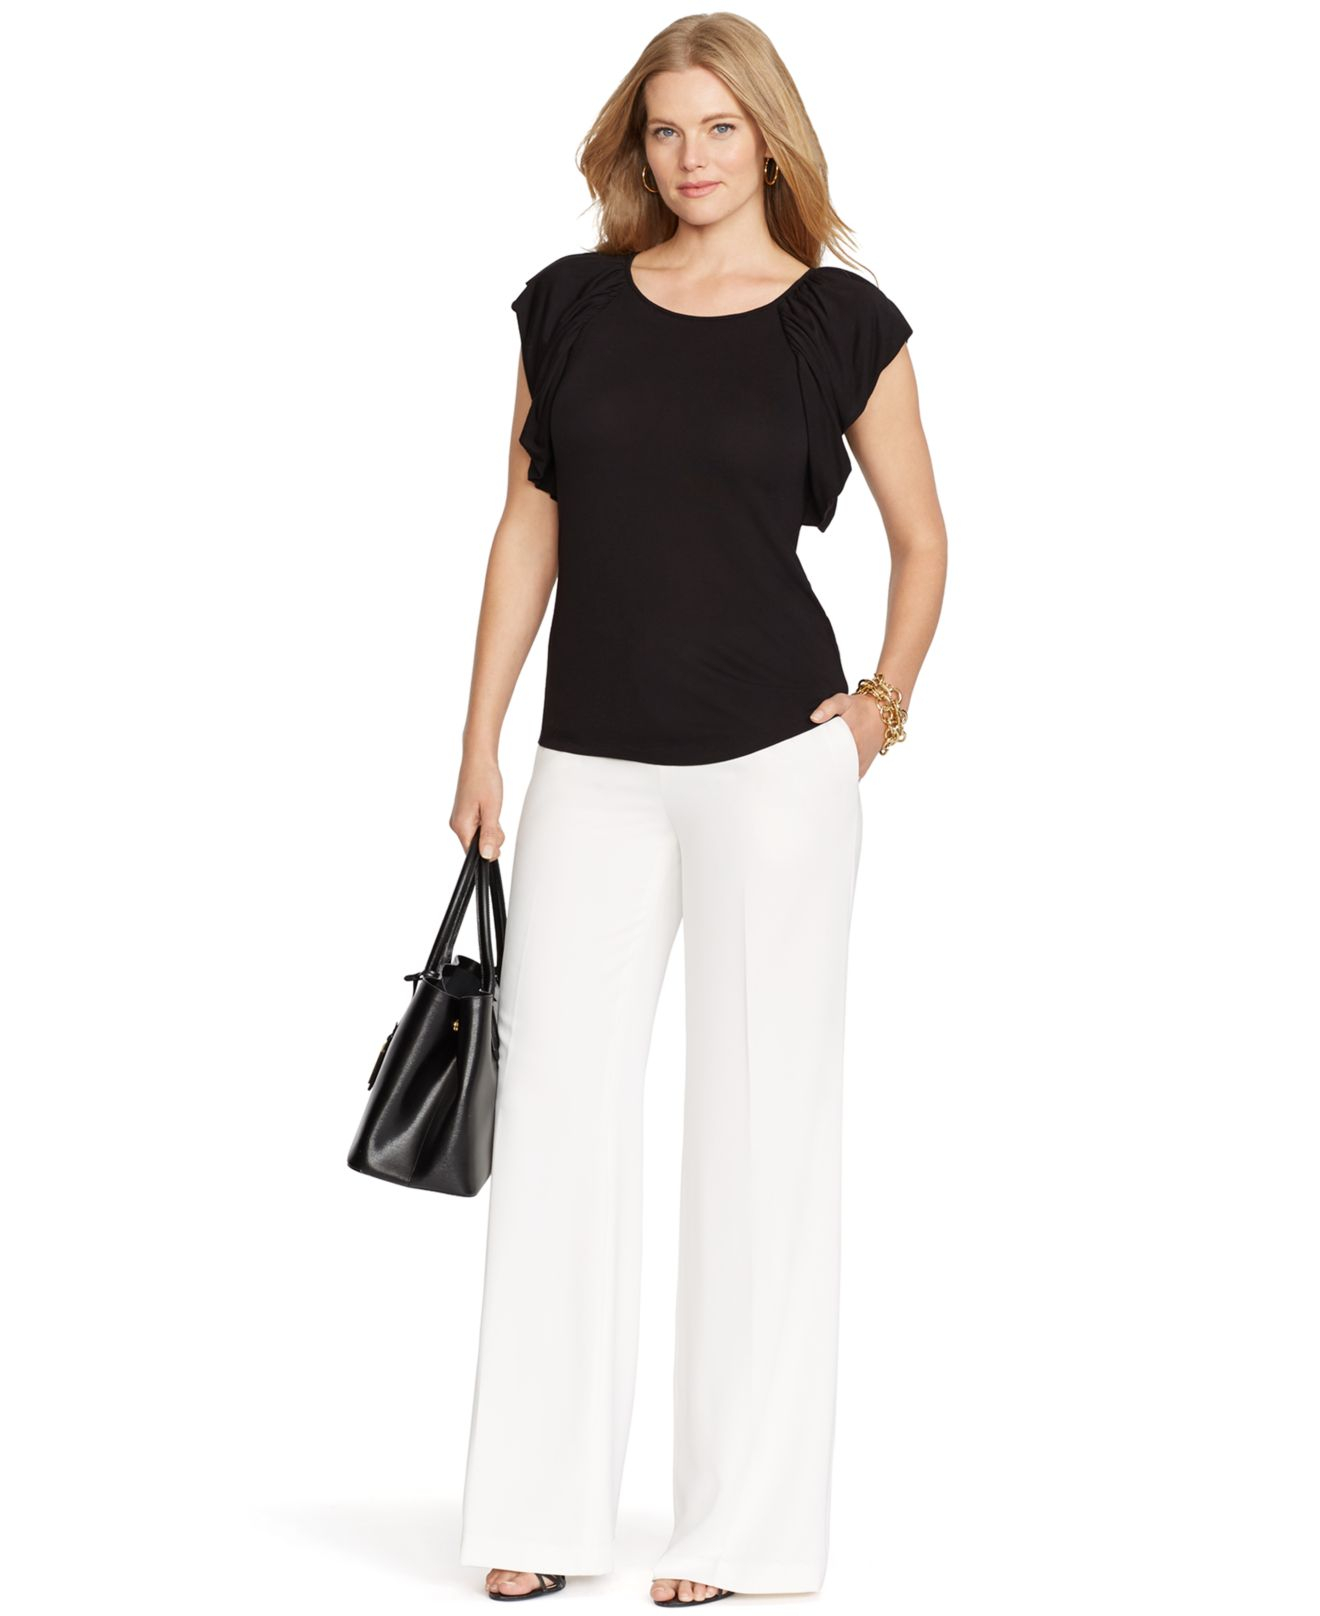 Plus size pants suits for women; Formal pants suits for women; White pants suit for women; Dressy pants suits for women; Pants Suits () Avoid Expensive Suits! And Check out Tbdress Cheap Pants Suits Collection, From Women's Pants Suits, and Crop Pants Suits for Women to Formal Pants Suits for Women they have it all! Now you can create.